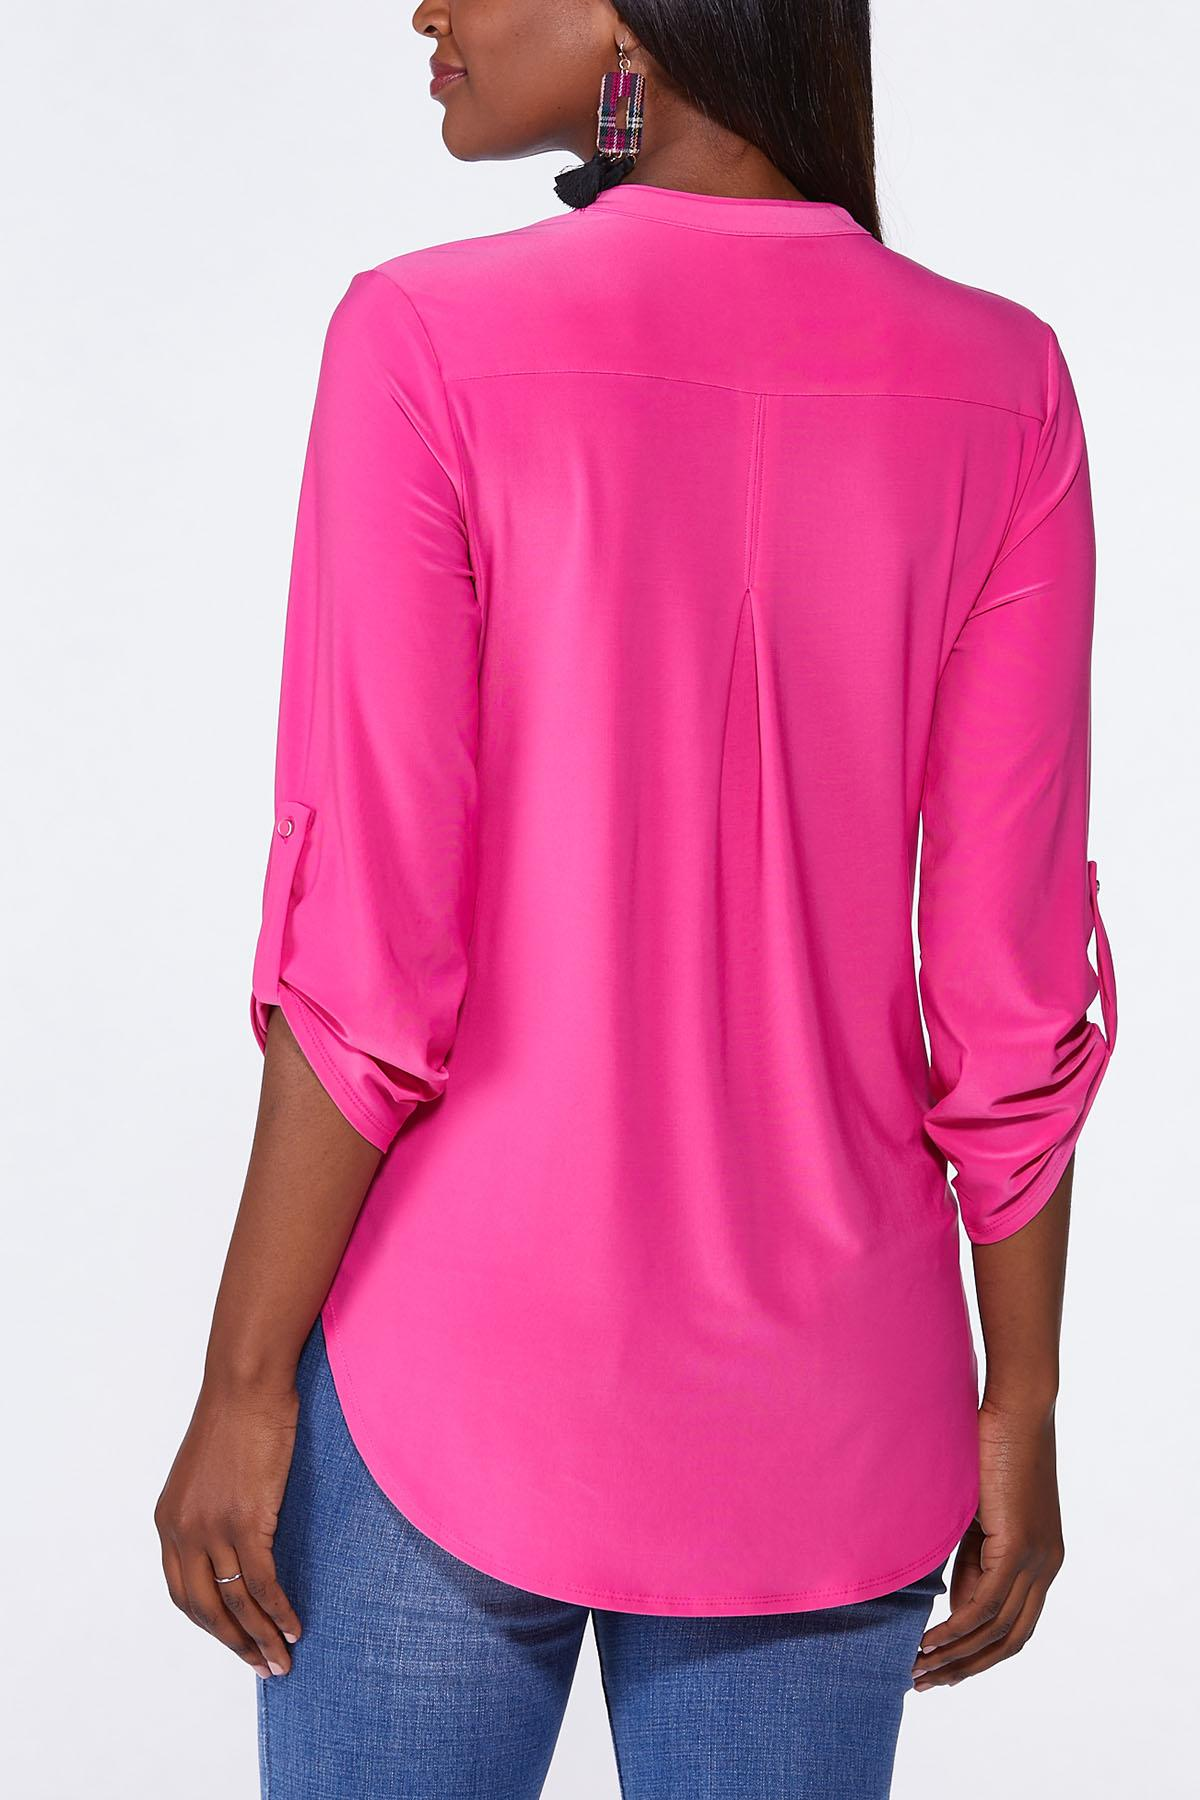 Solid Popover Top (Item #43942726)